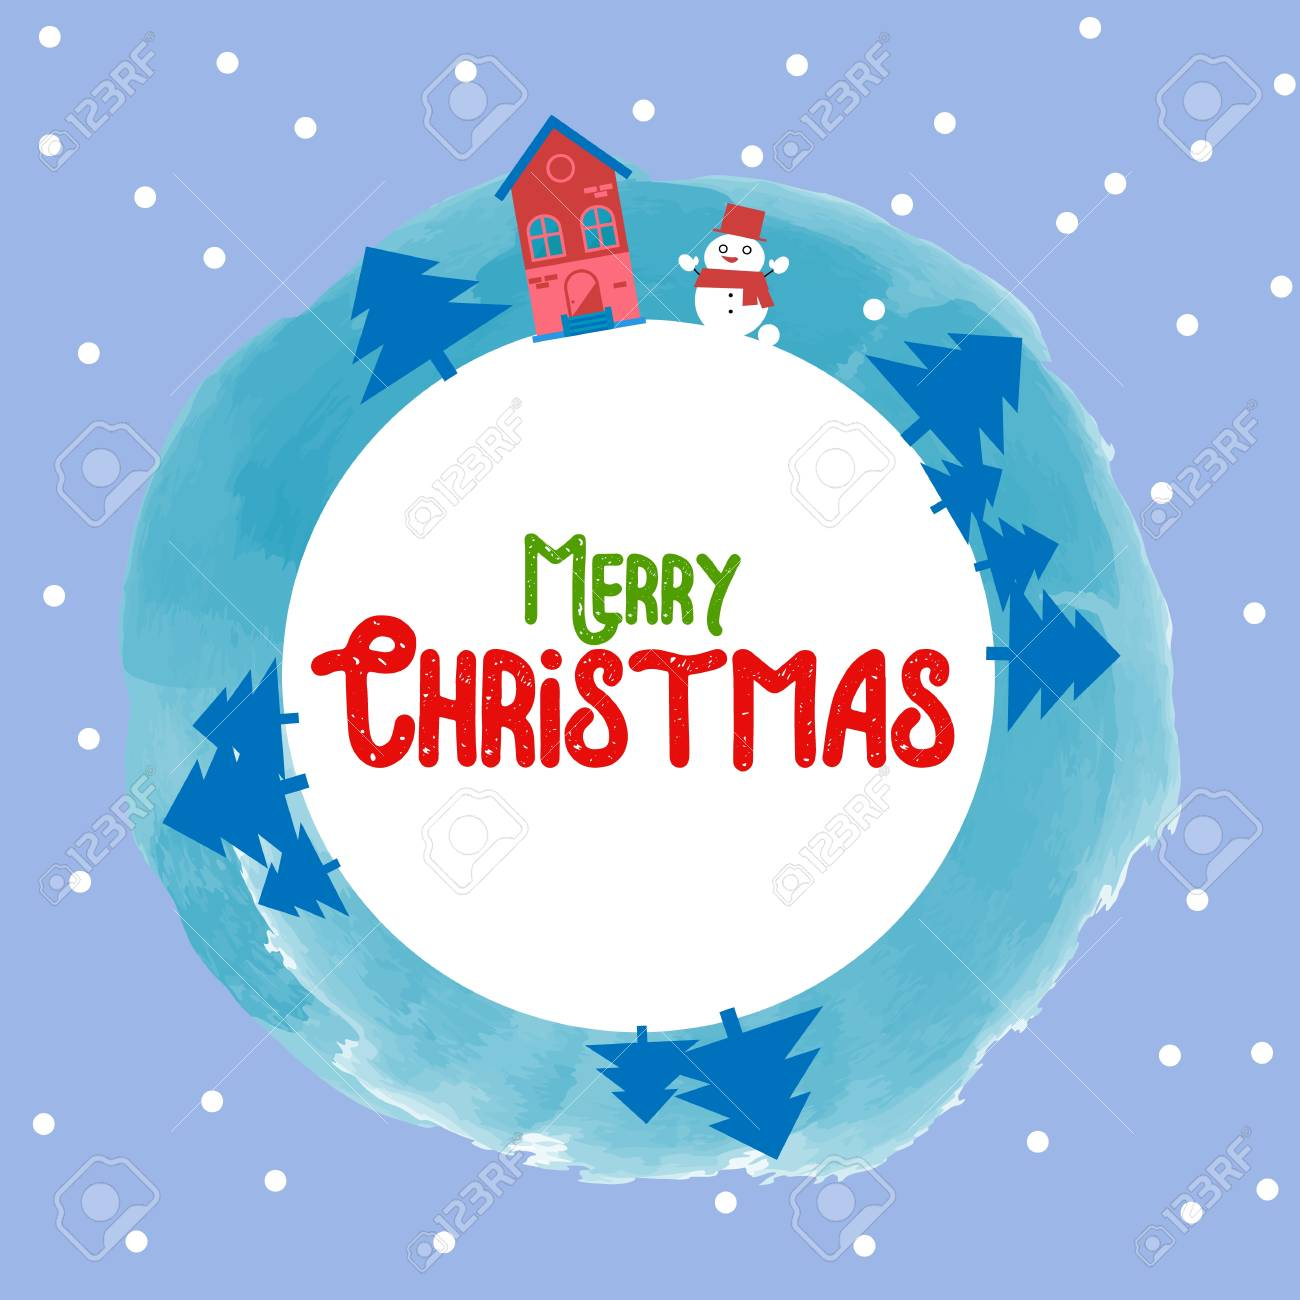 Merry Christmas Happy New Year 2018 Winter Greeting Card Background